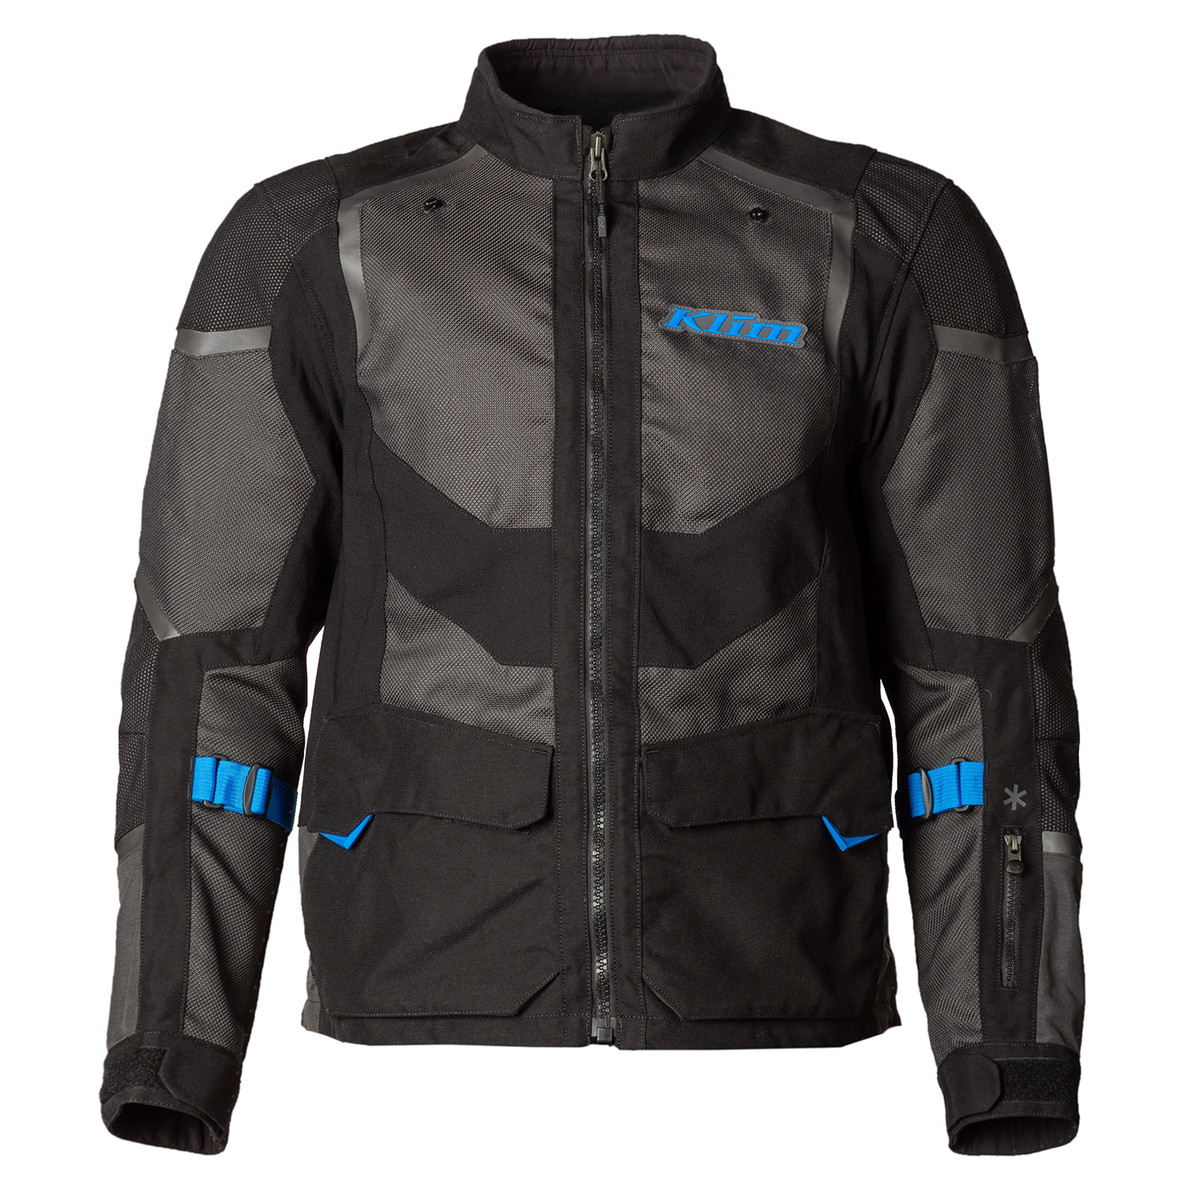 Klim Baja S4 Jacket Black - Kinetic Blue Front